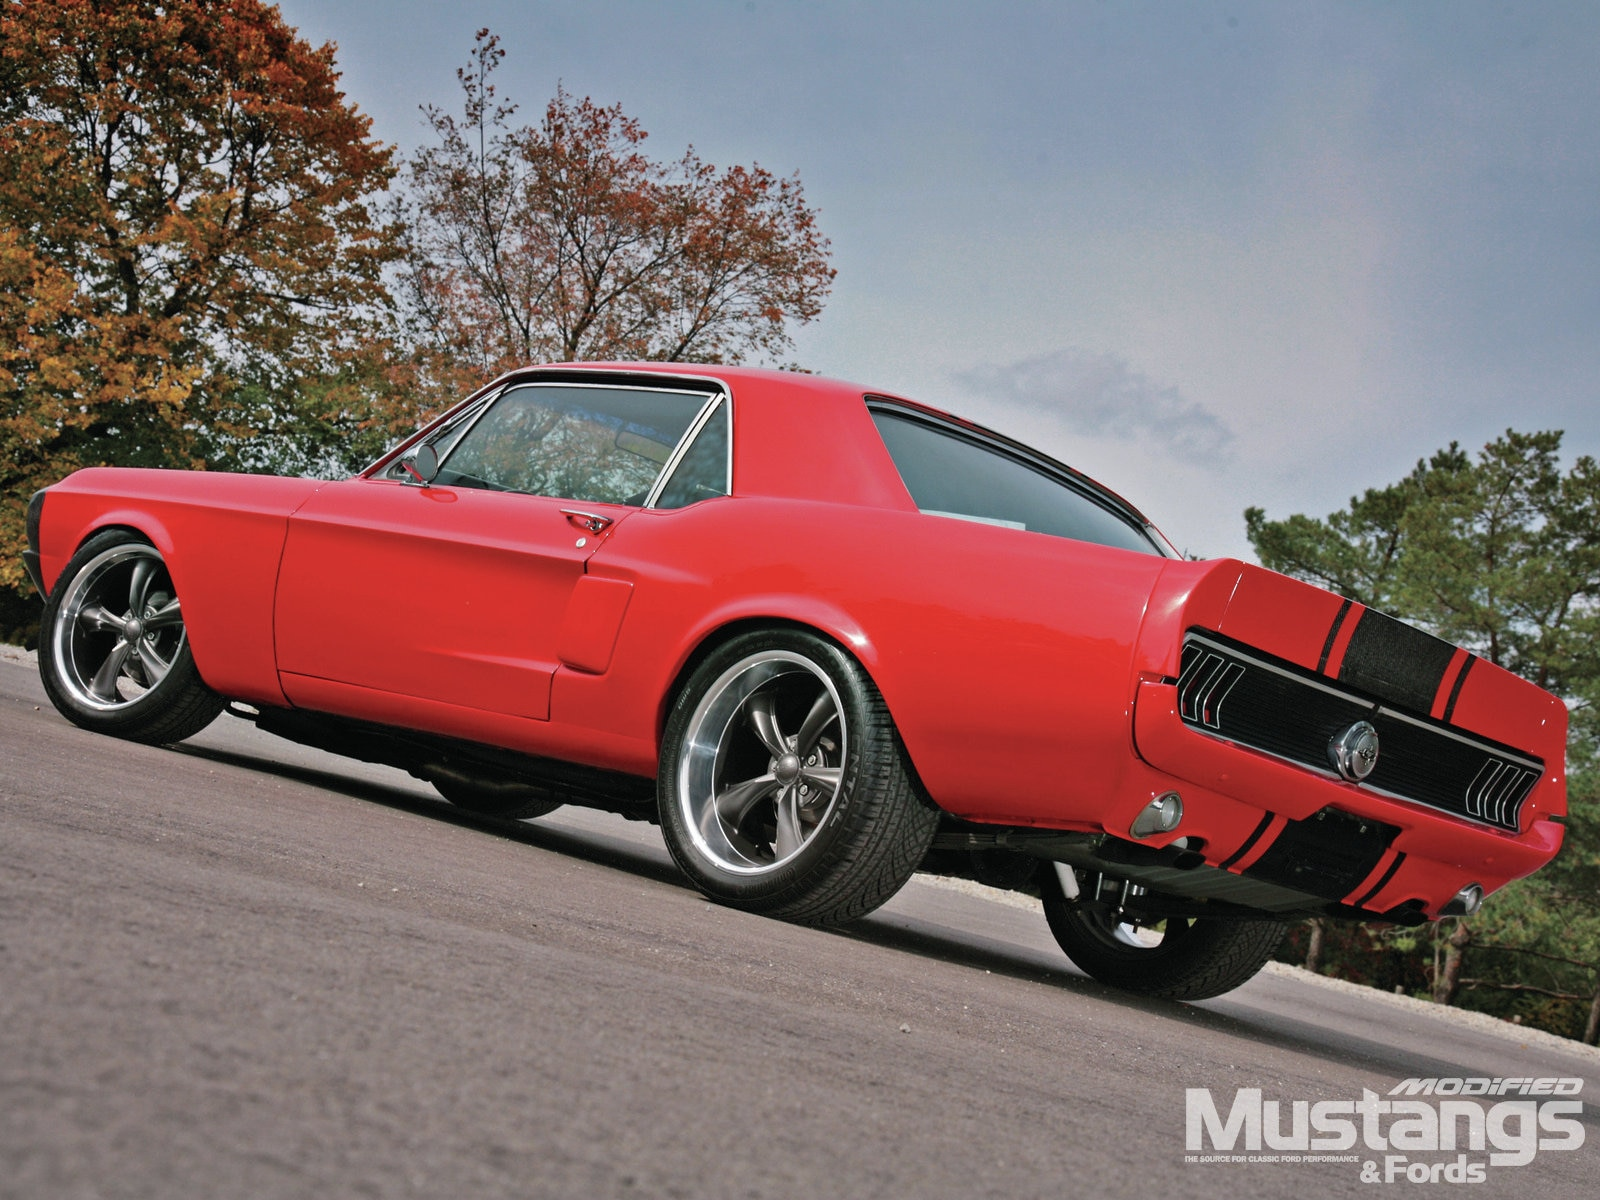 1968 Ford Mustang Coupe Rear Side